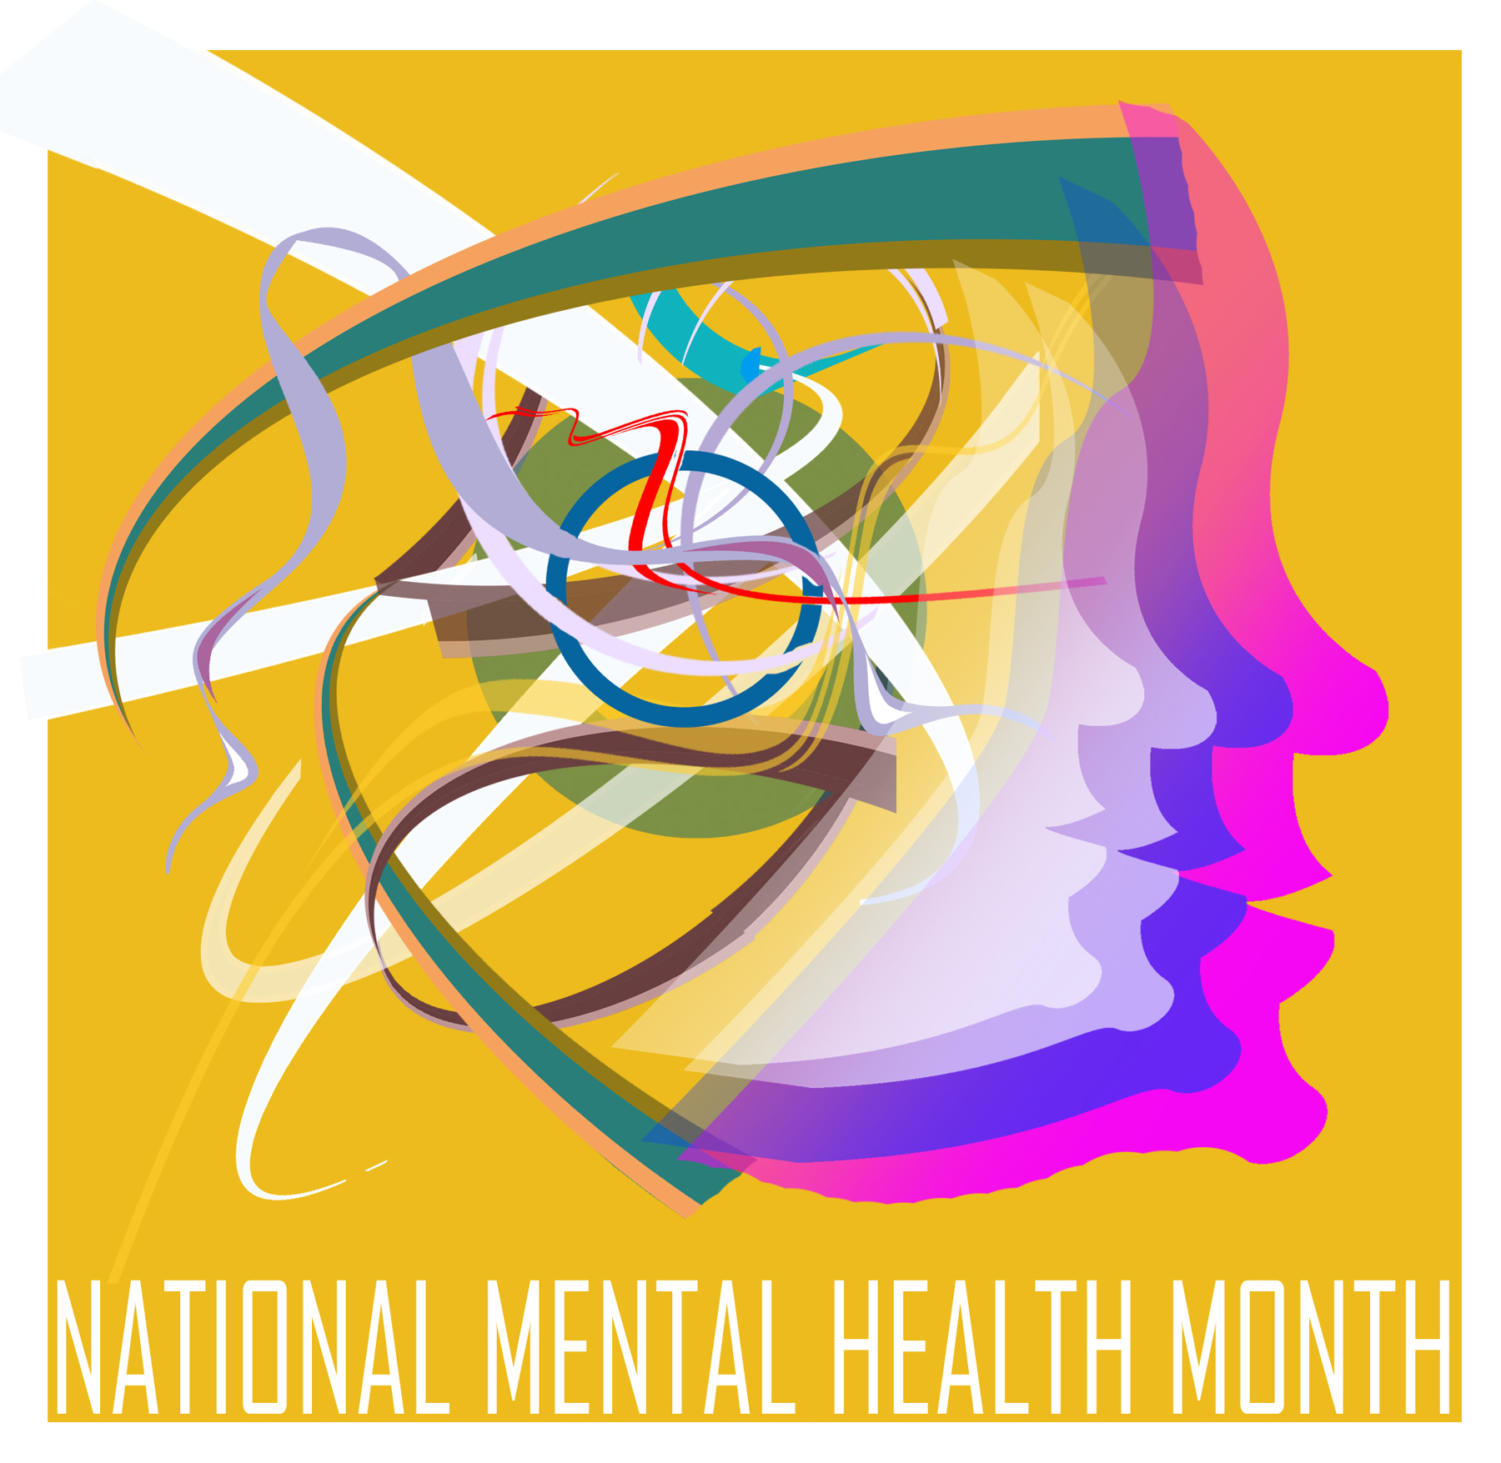 OFFUTT AIR FORCE BASE, Neb. -- May is National Mental Health Month and according to the professionals of the 55th Medical Group people can ensure good mental health by reducing stress. Stress can be reduced by getting enough sleep, eating right, exercising and eliminating destructive habits. U.S. Air Force Graphic by Jeff W. Gates